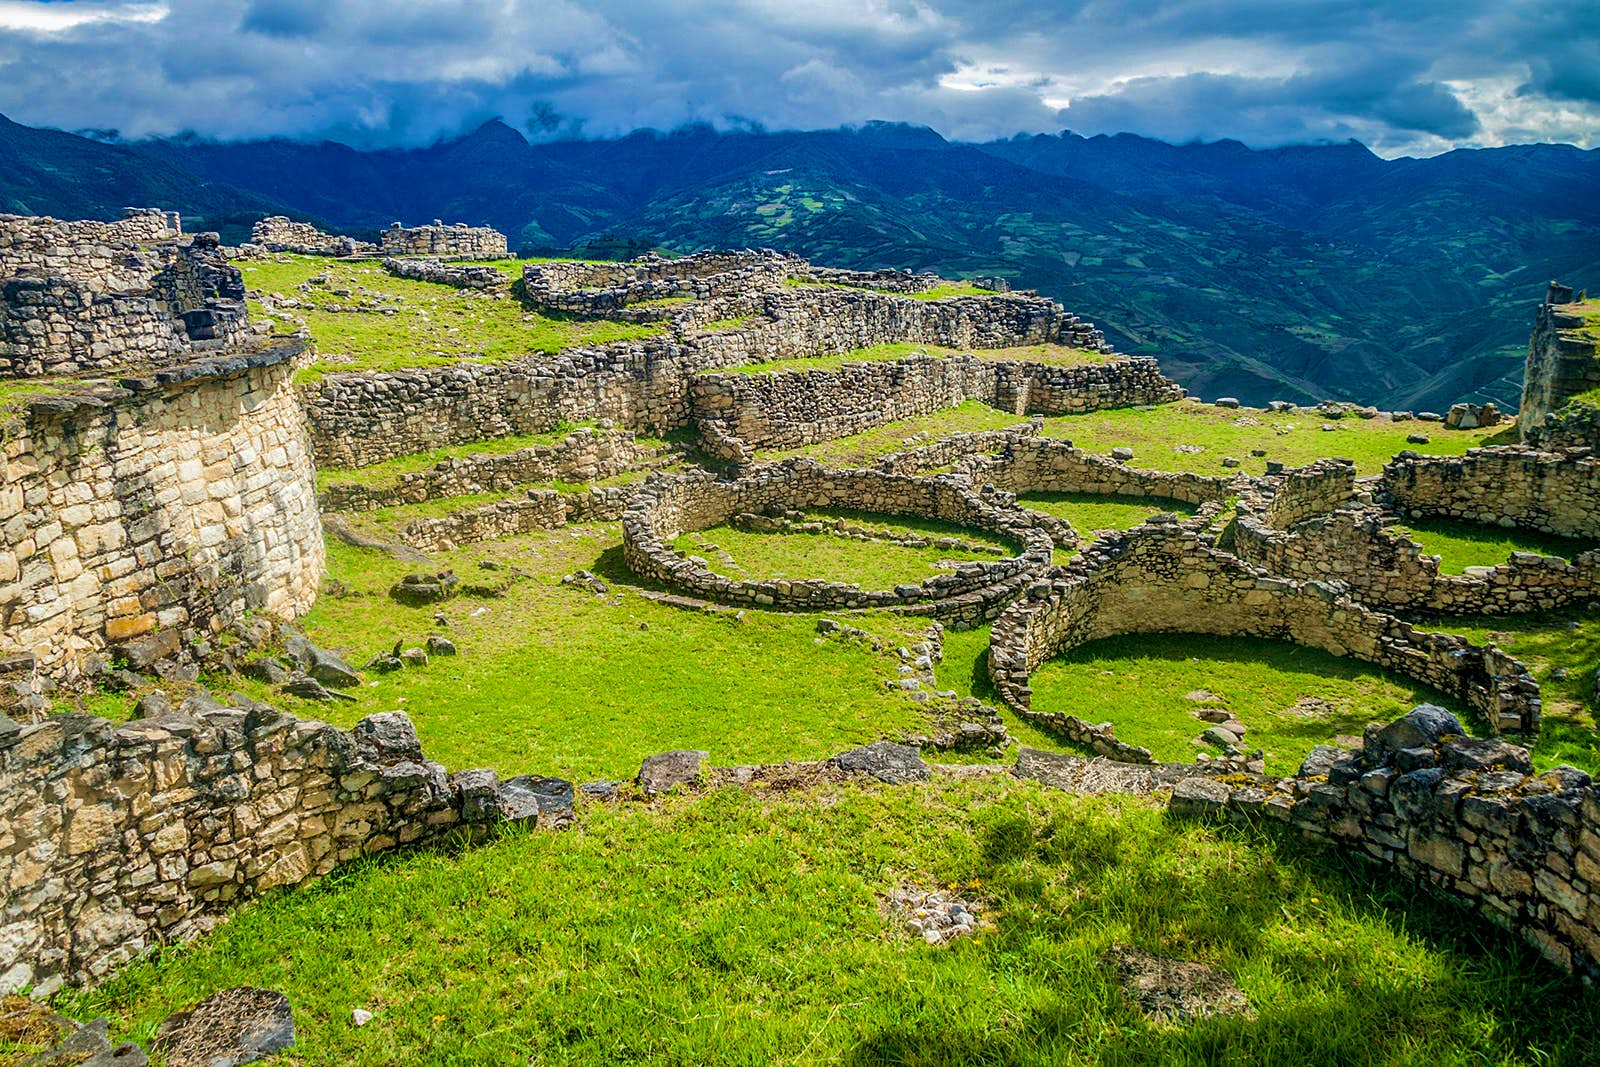 Peru travel - A view of the Kuelap citadel site, with a grassy field punctuated by foundations of stone walls and round homes